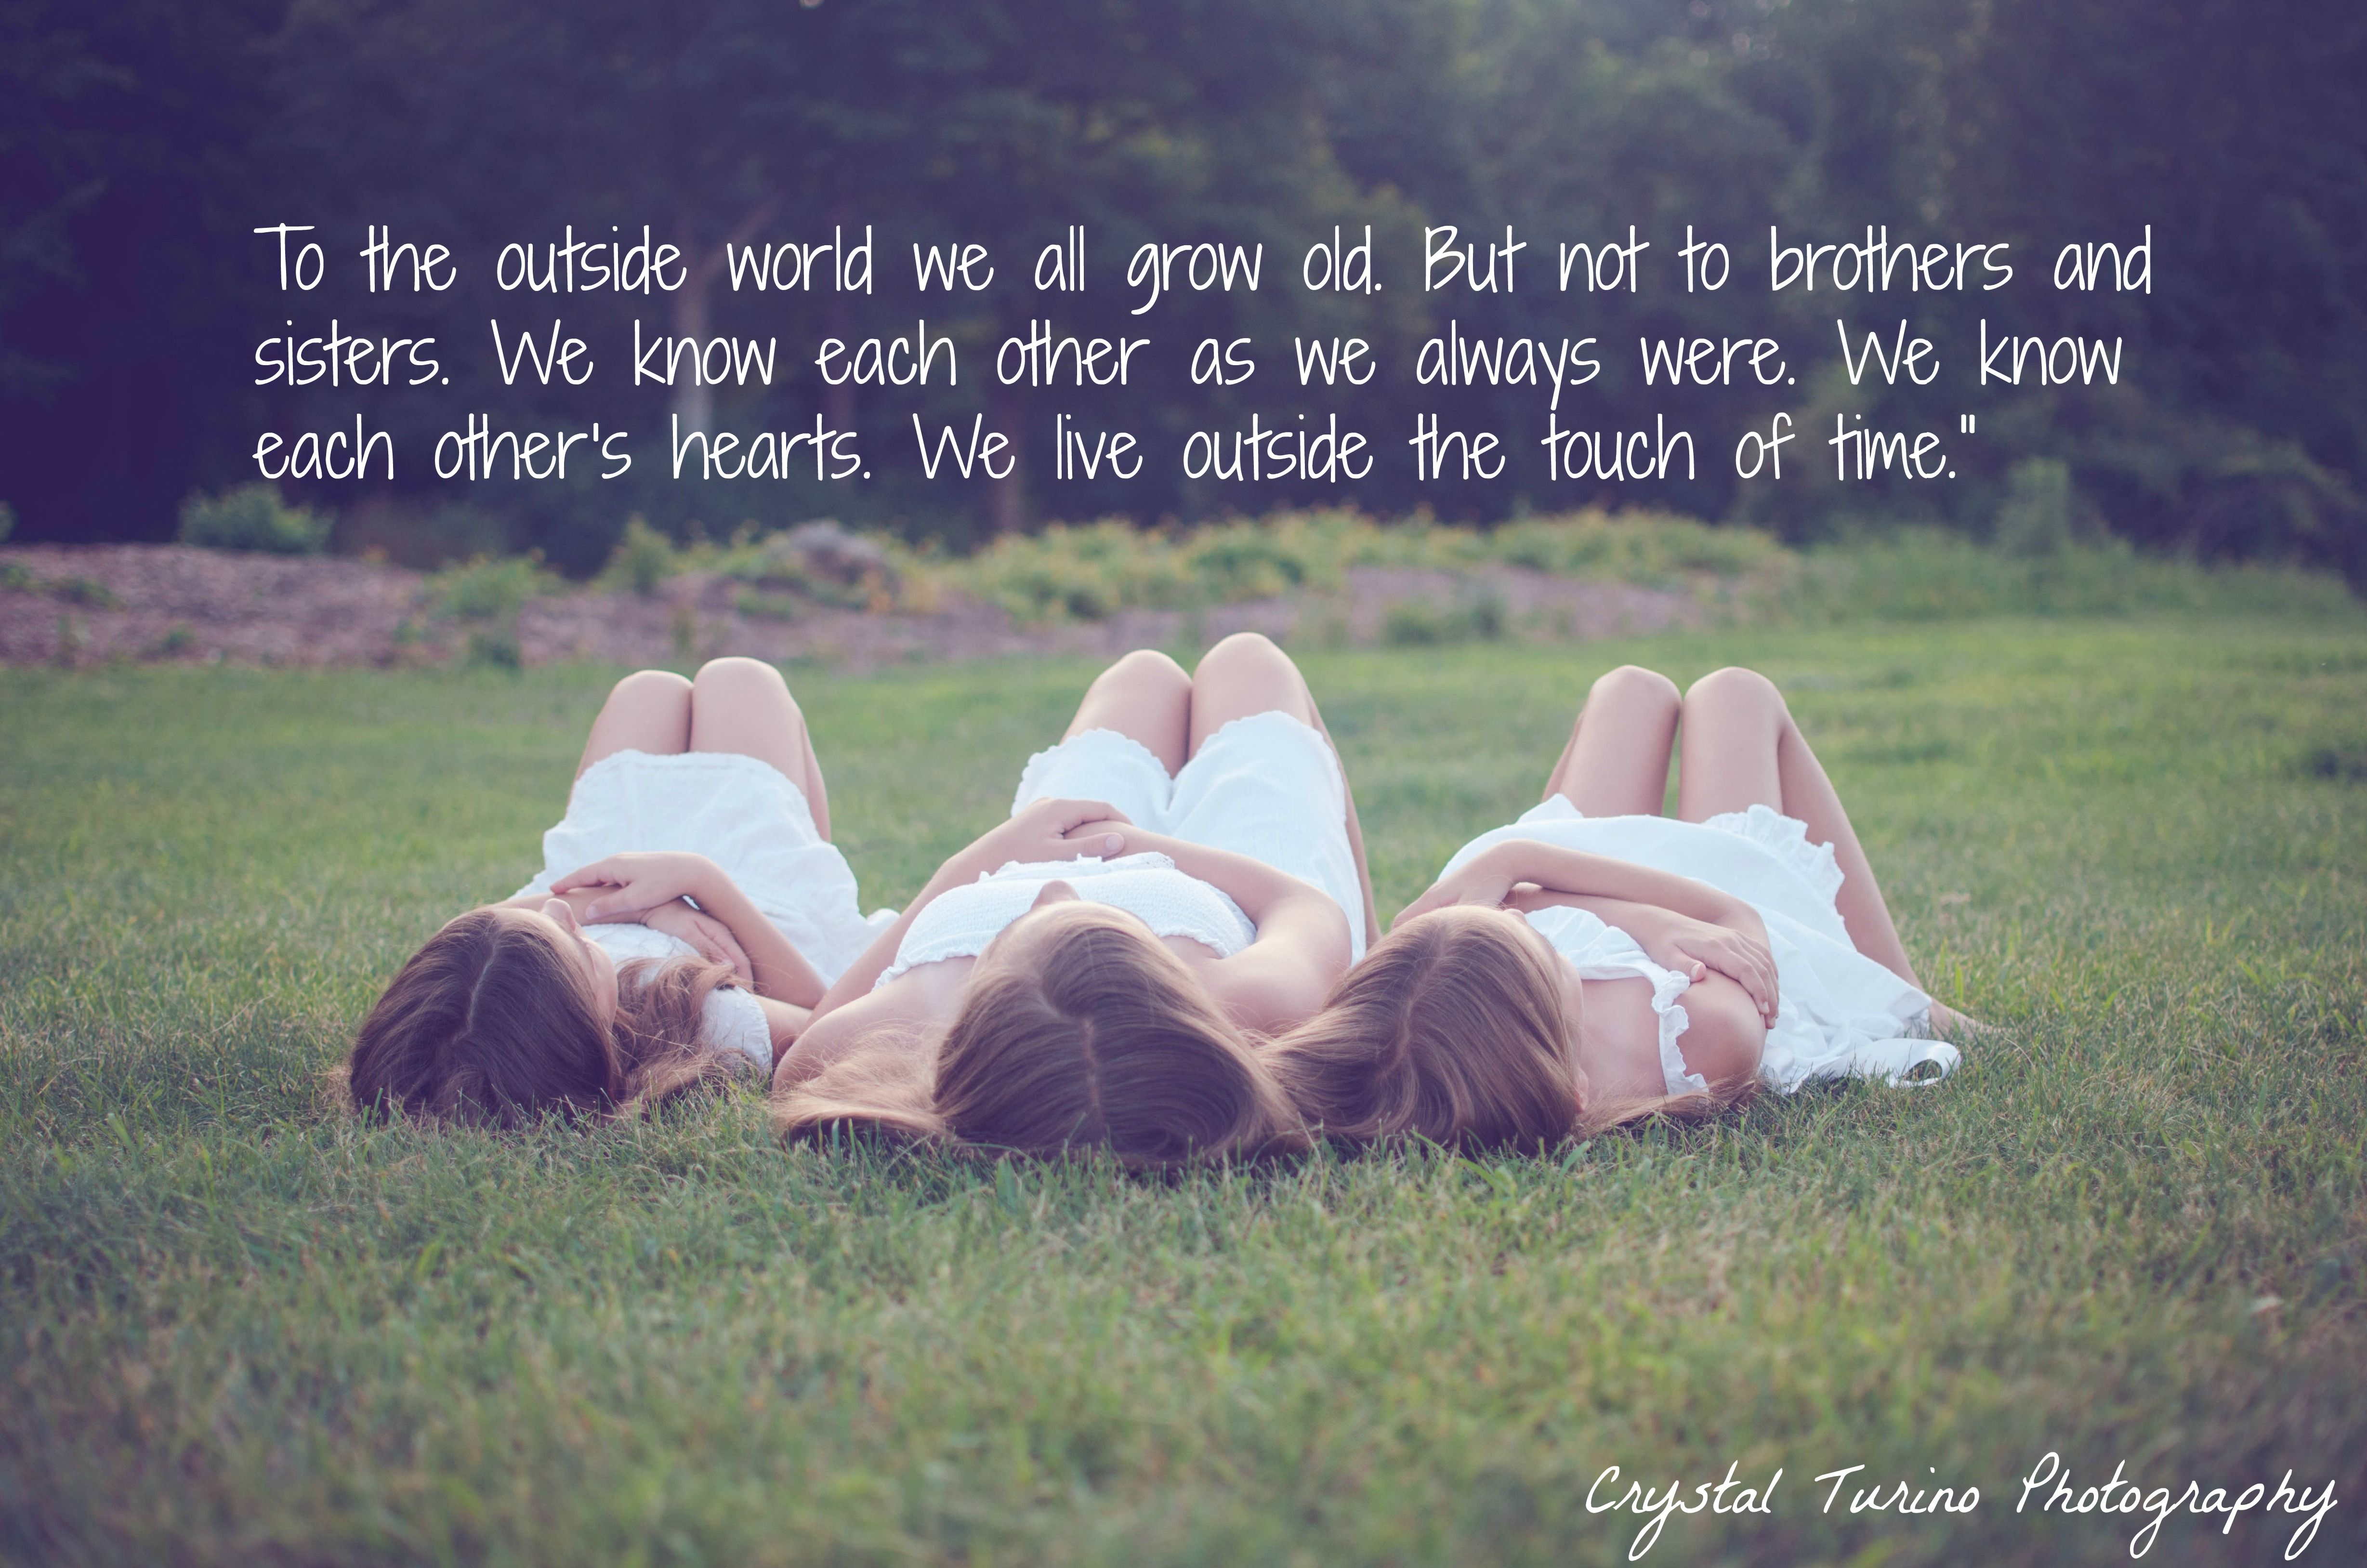 Albany Ny Wedding Photographer Crystal Turino Photography Sibling Quotes Sister Quotes Love My Sister